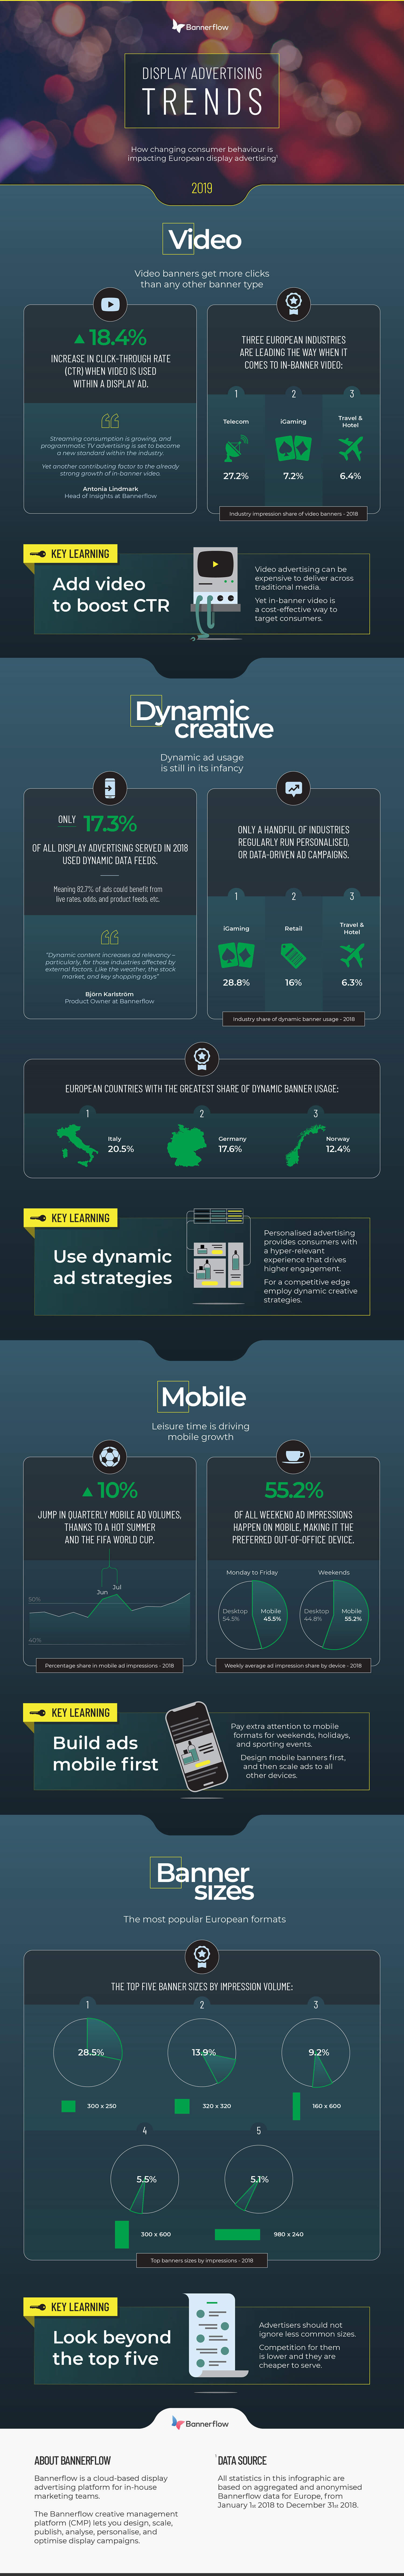 Display Advertising Trends 2019 Infographic